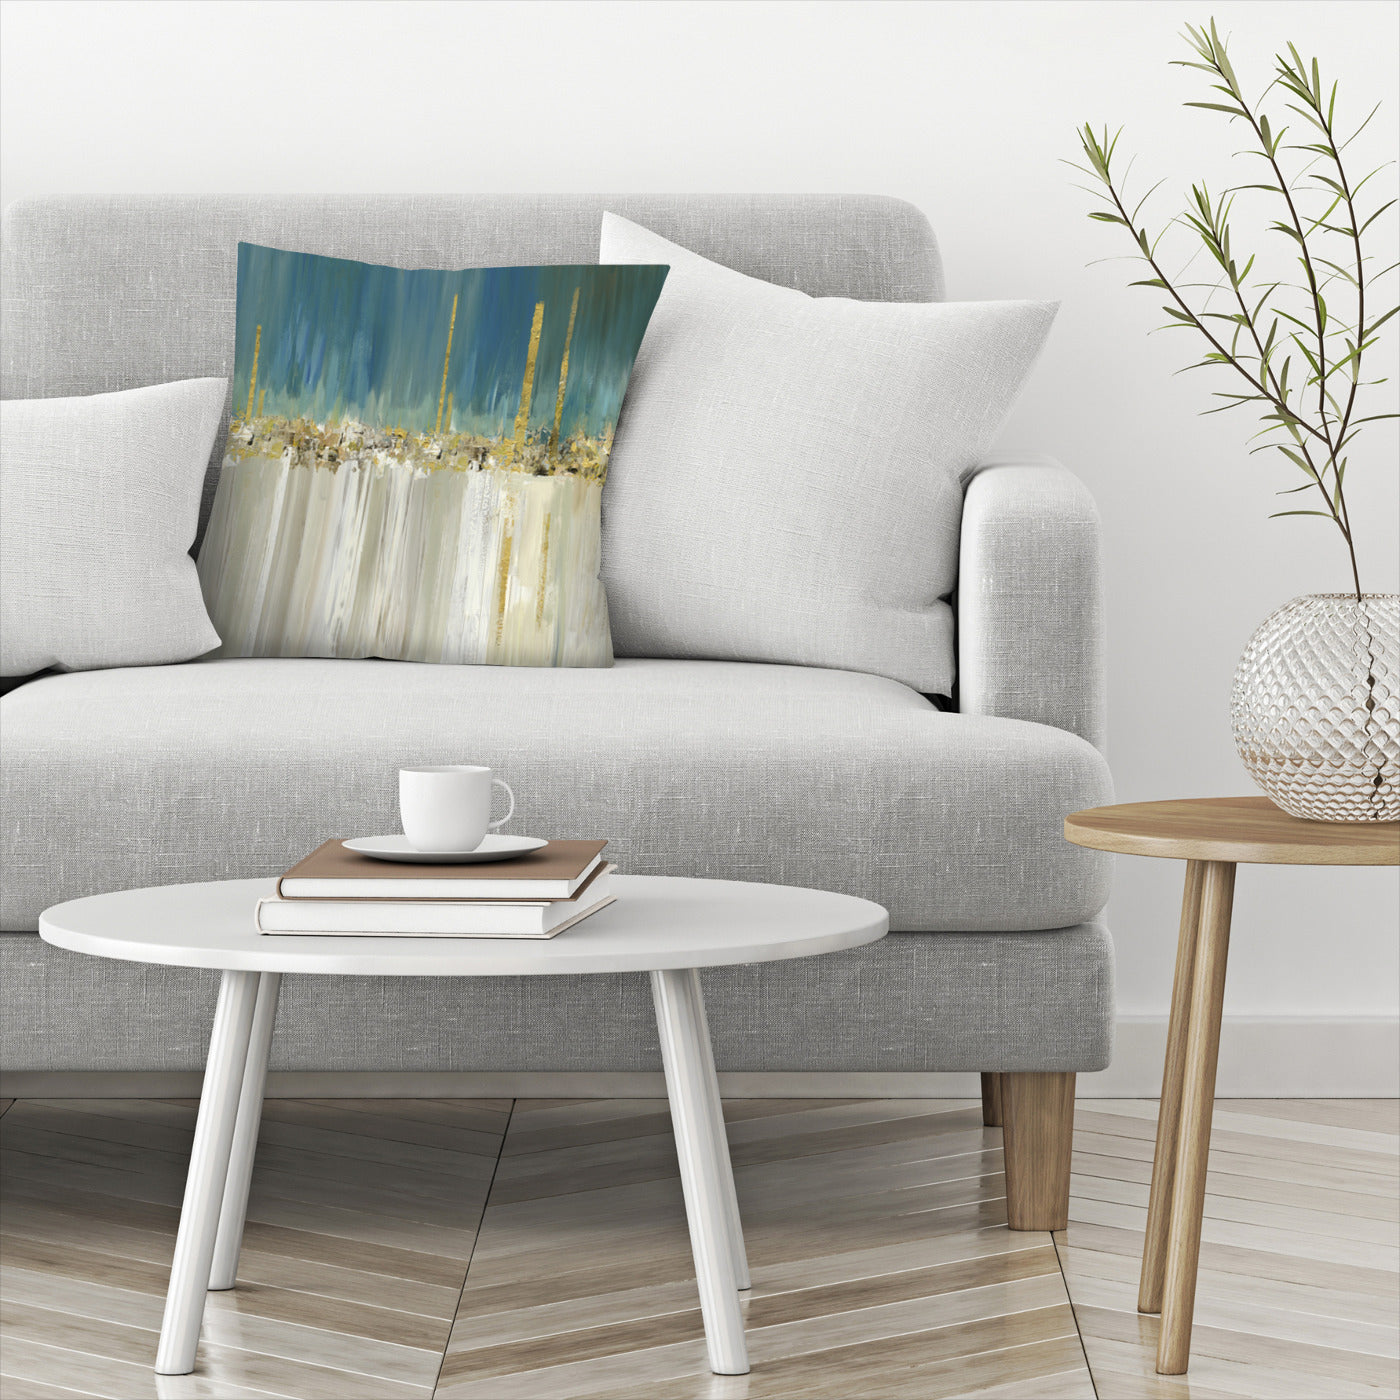 Shine A Light Ii by PI Creative Art Decorative Pillow - Decorative Pillow - Americanflat